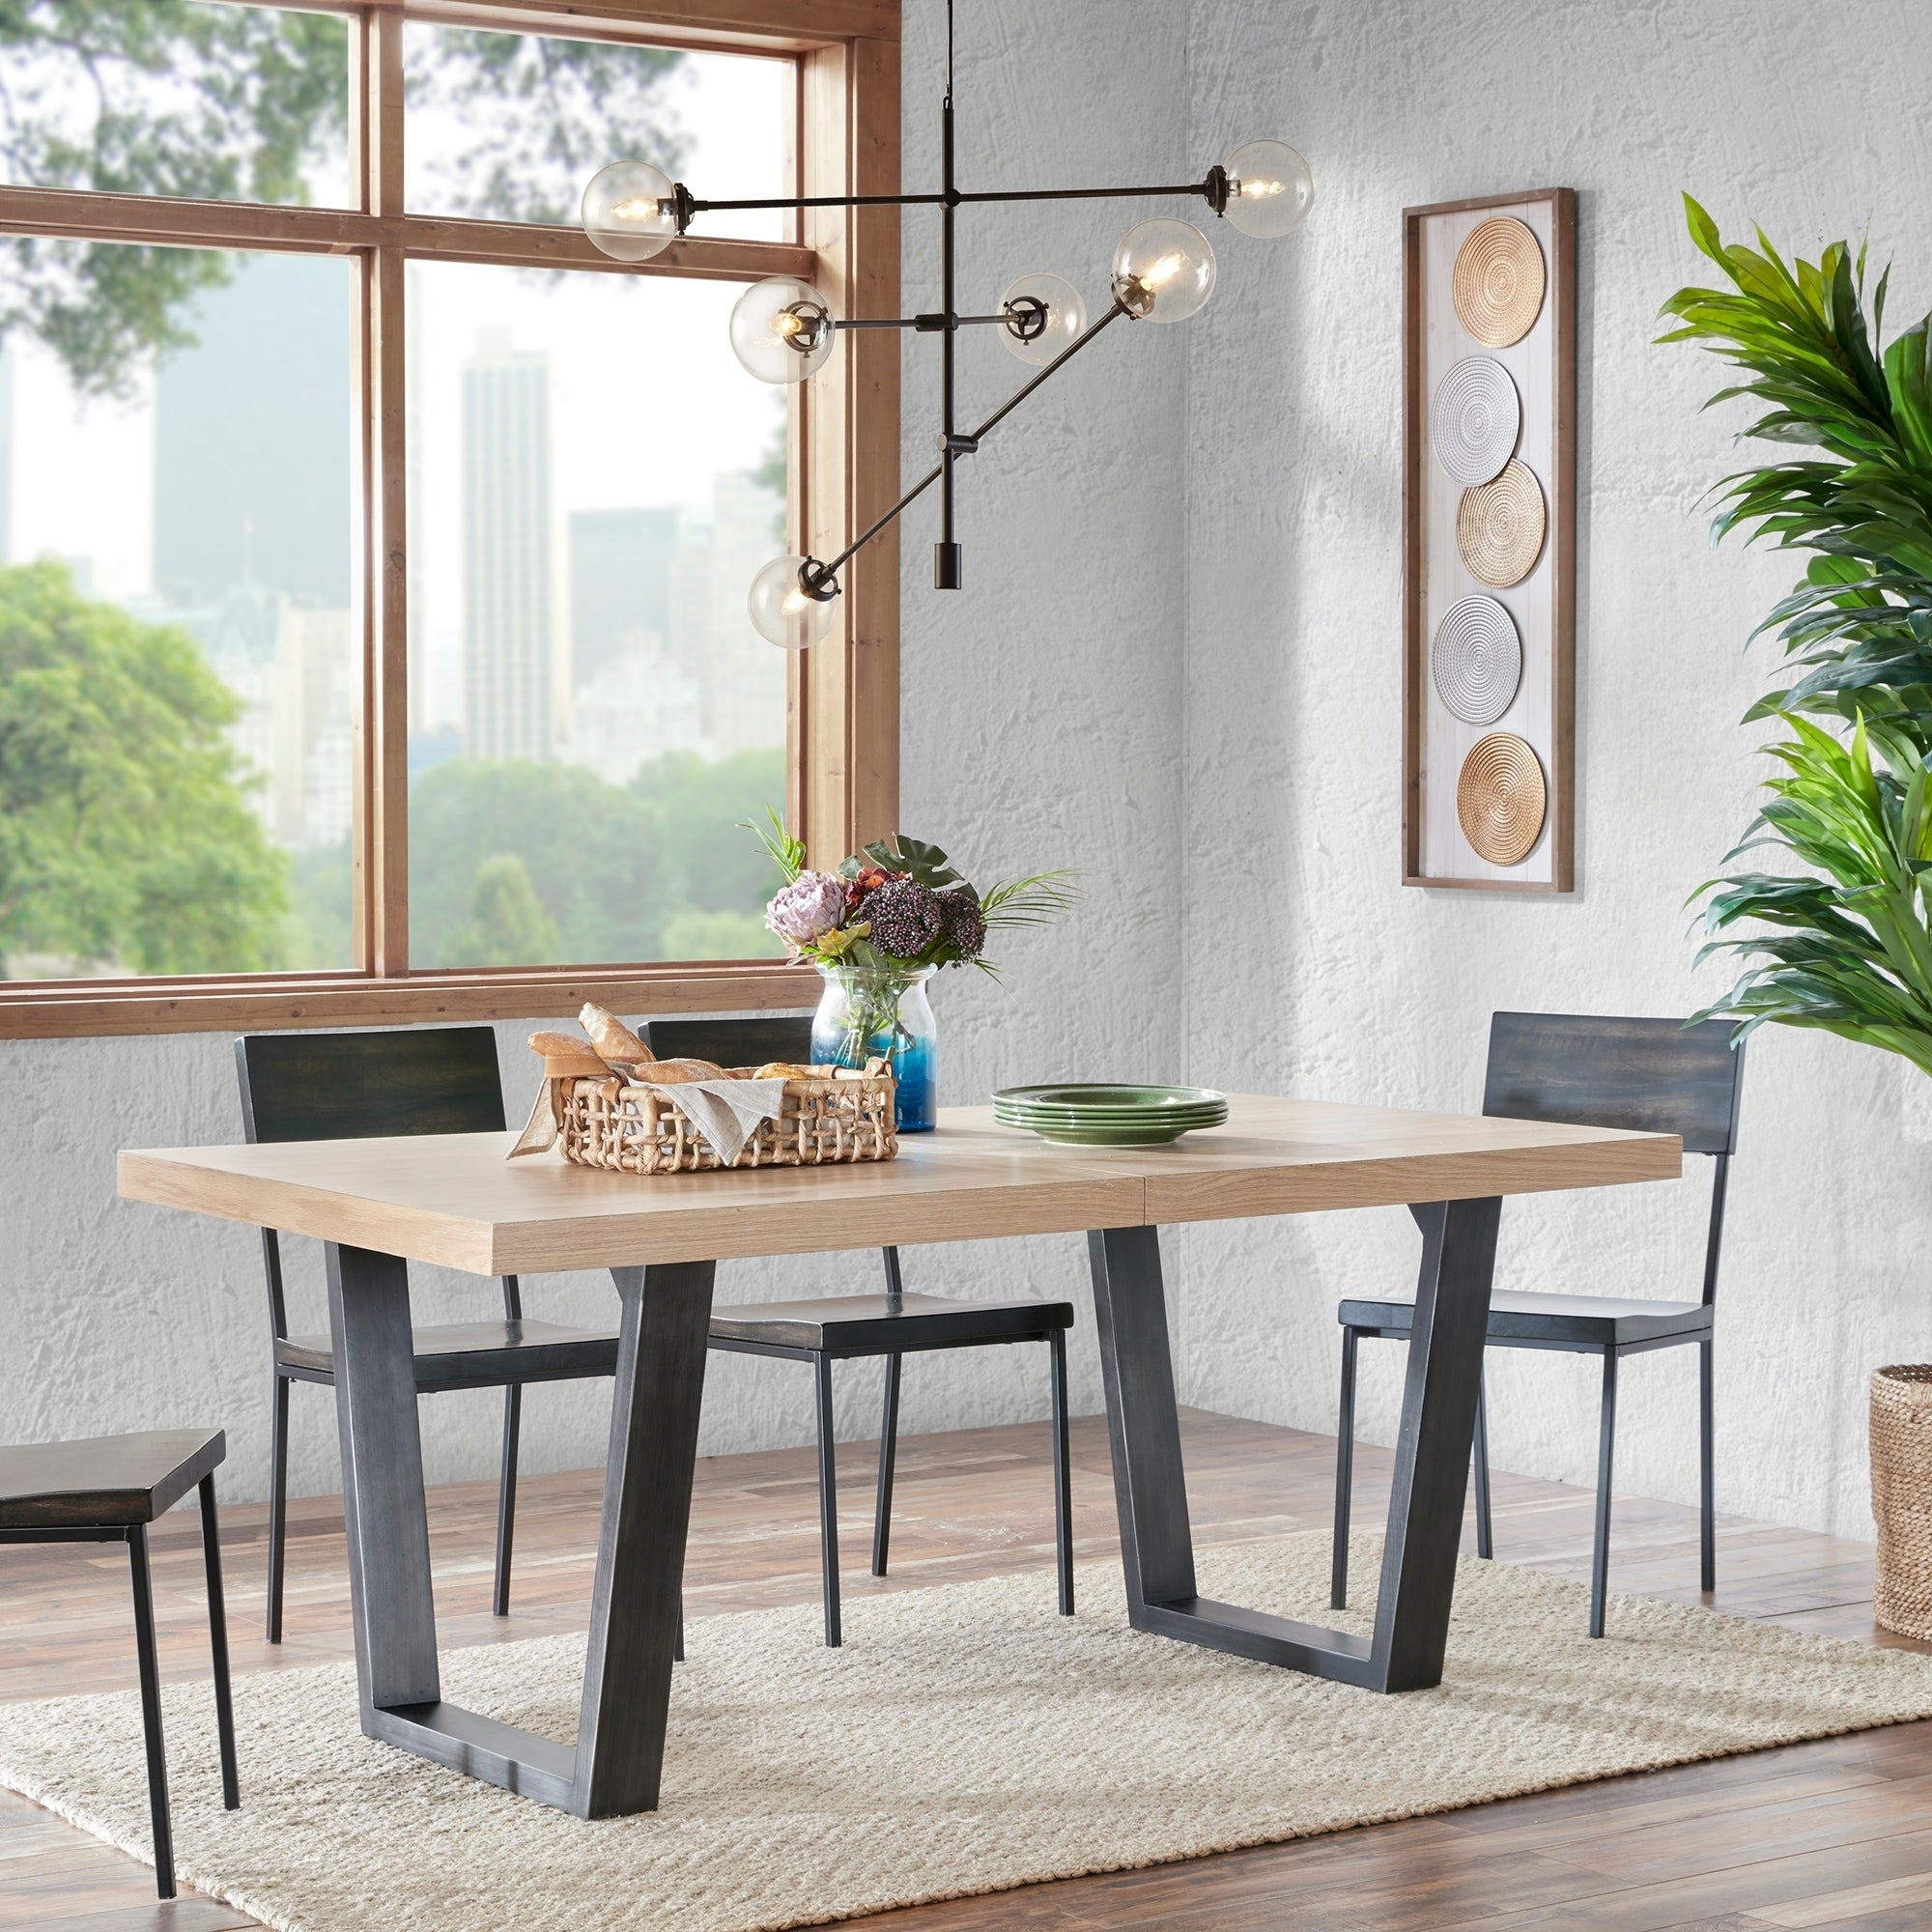 INK+IVY Arcata Natural Dining Table - 72w x 38d x 30h